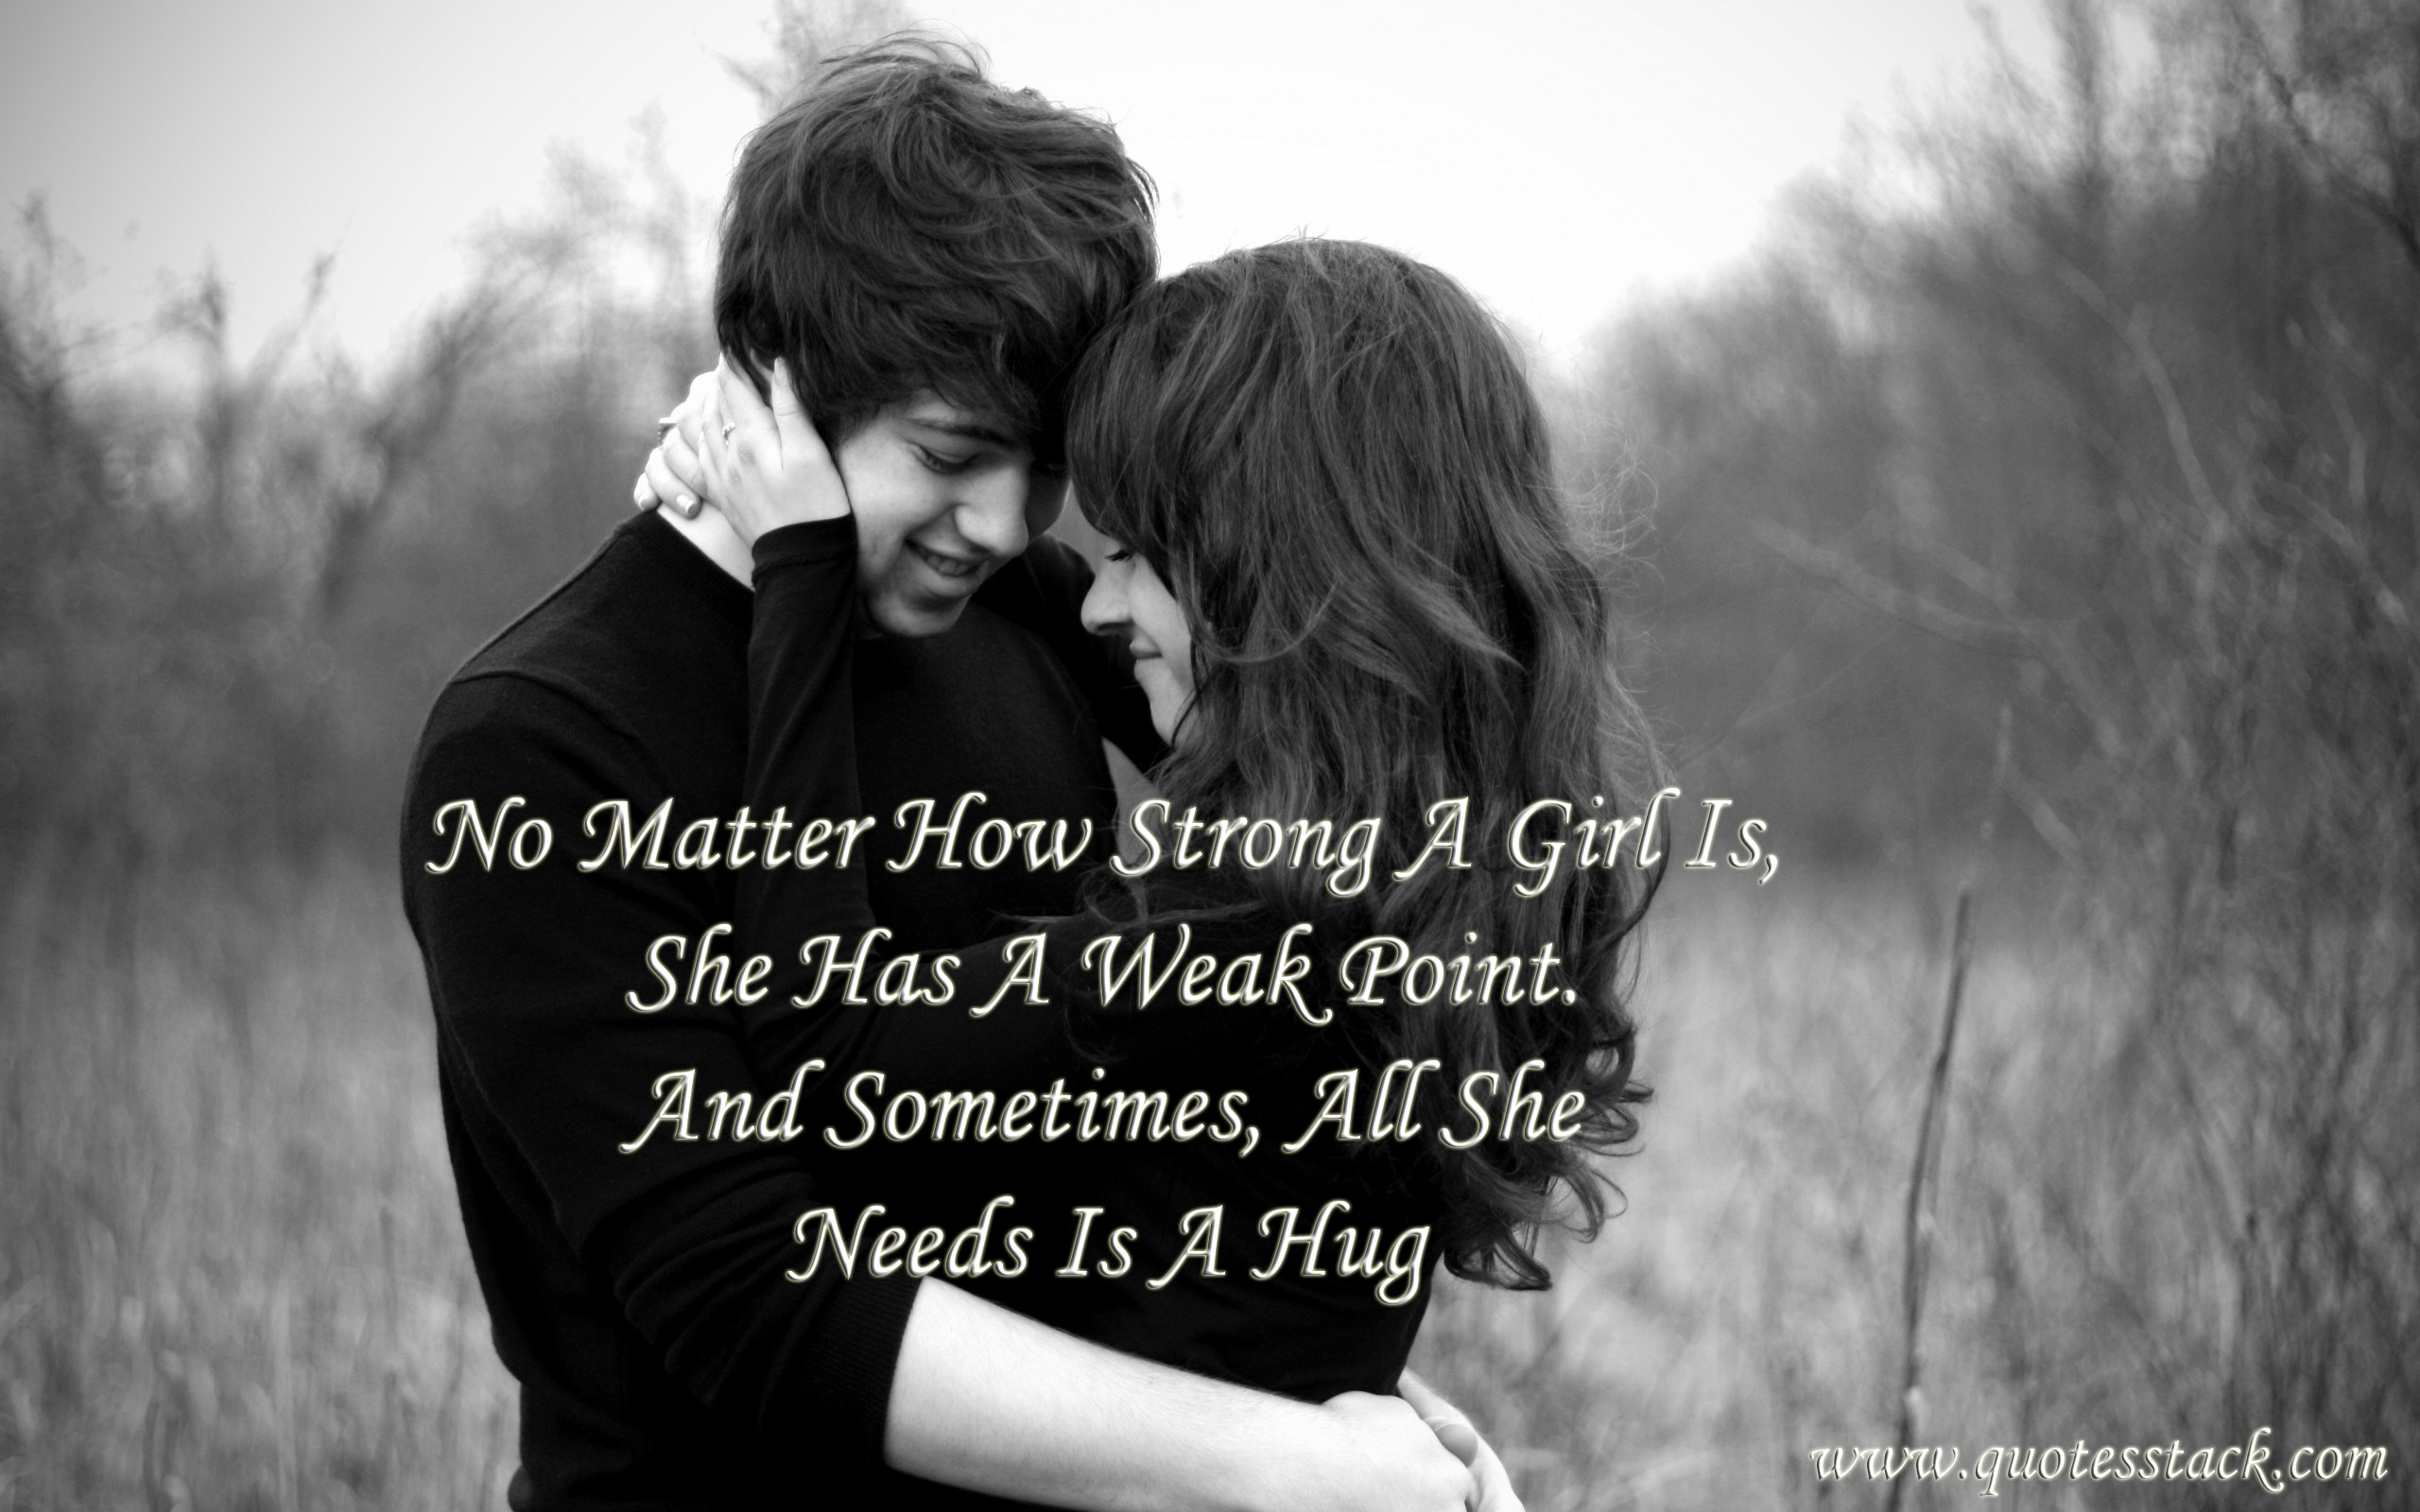 Cute Love Hug Quotes For Girls – All She Need Is A Hug ...